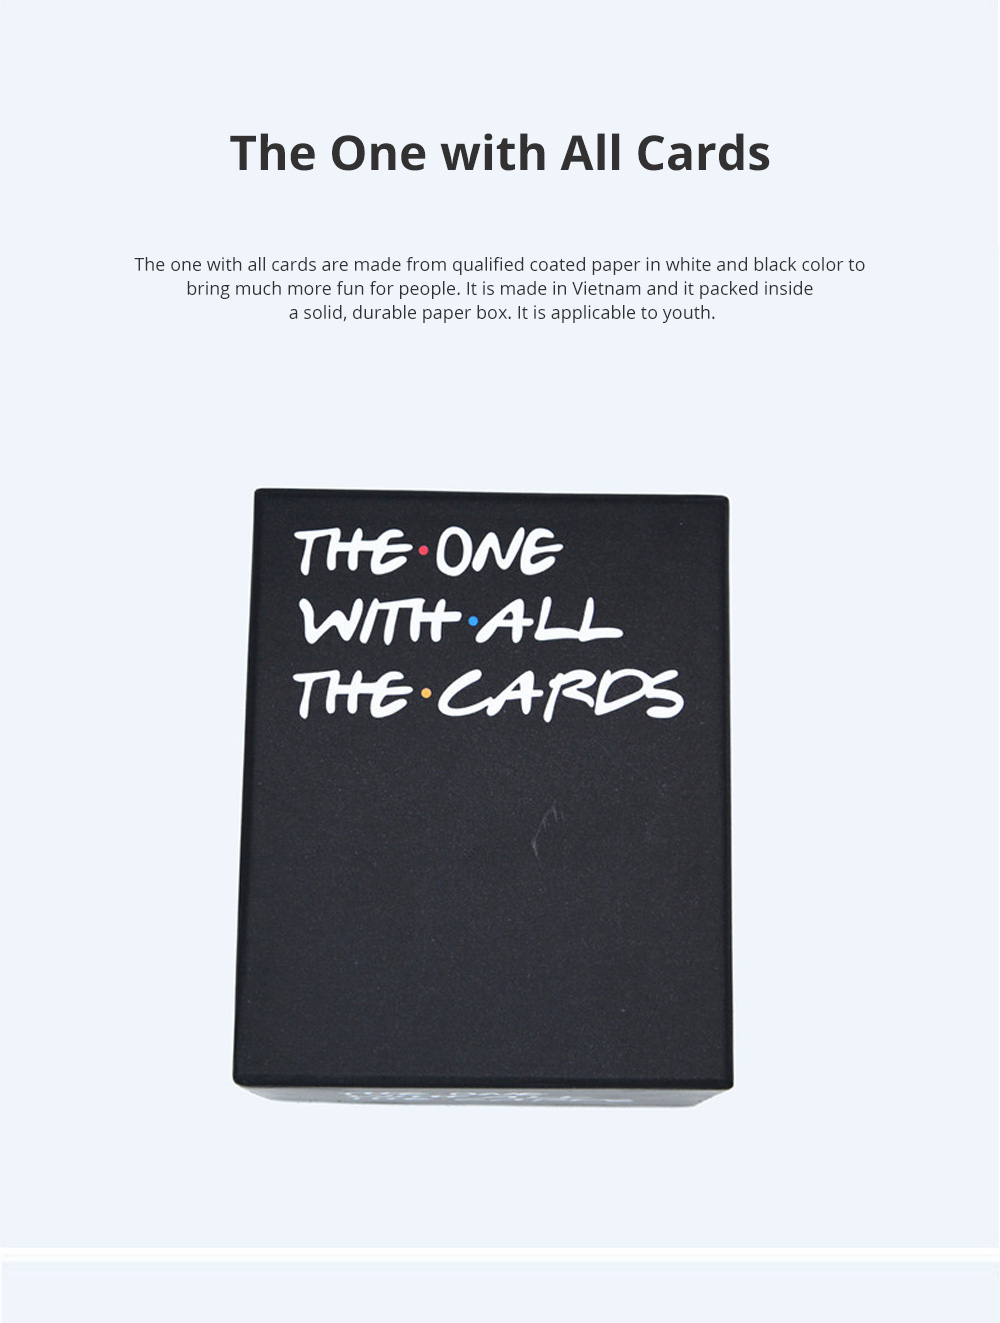 The One with All Cards Role-playing Games Interesting Coated Paper Poker Cards Against Humanity 0